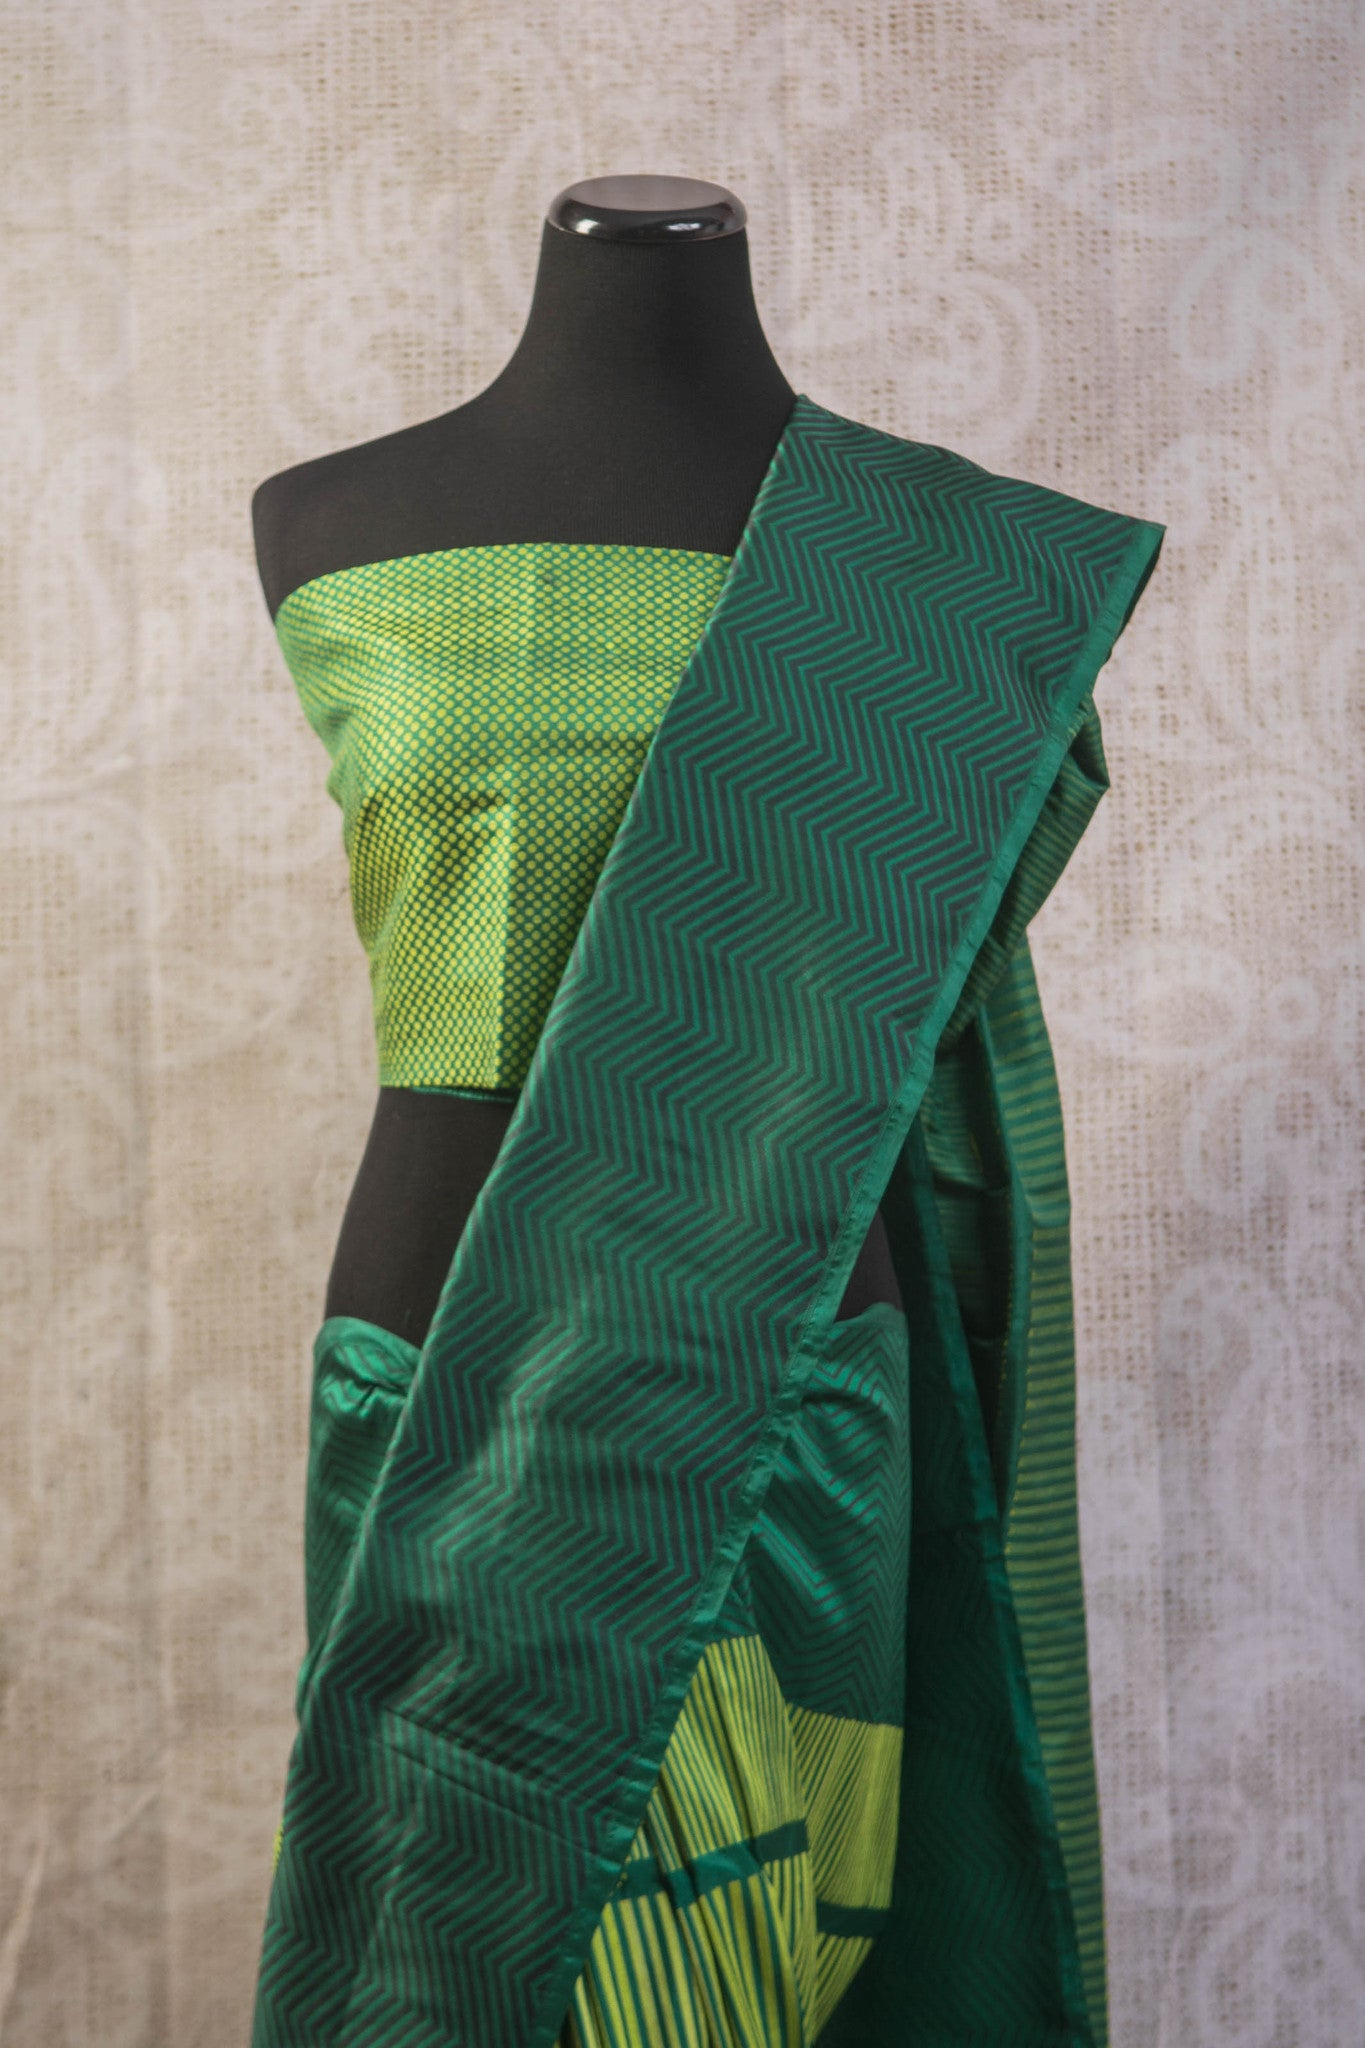 90b256 Multi green Banarasi silk saree with zig zag stripes & satin black pallu. The simple sari is available at our Indian clothing store in USA, Pure Elegance. This ethnic outfit is a great pick for parties, get-togethers and functions!